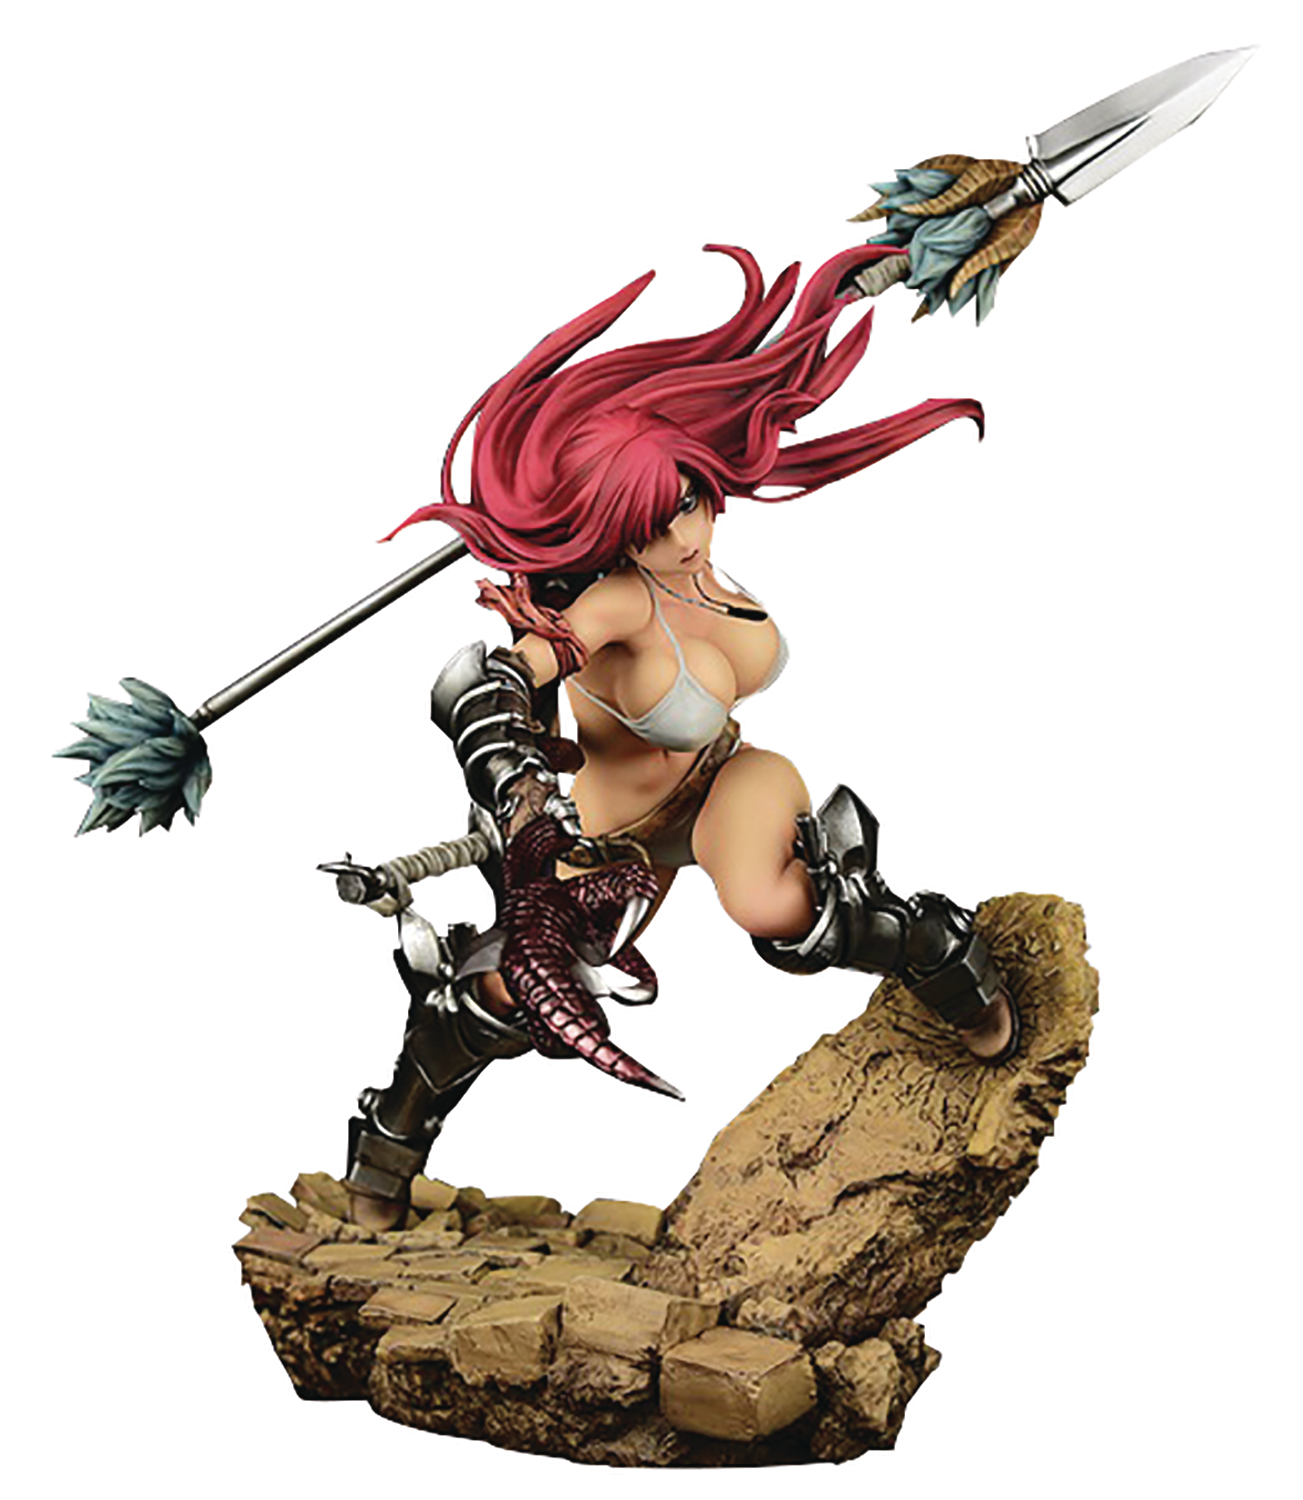 FAIRY TAIL ERZA SCARLET 1/6 PVC FIG KNIGHT VER (MR)